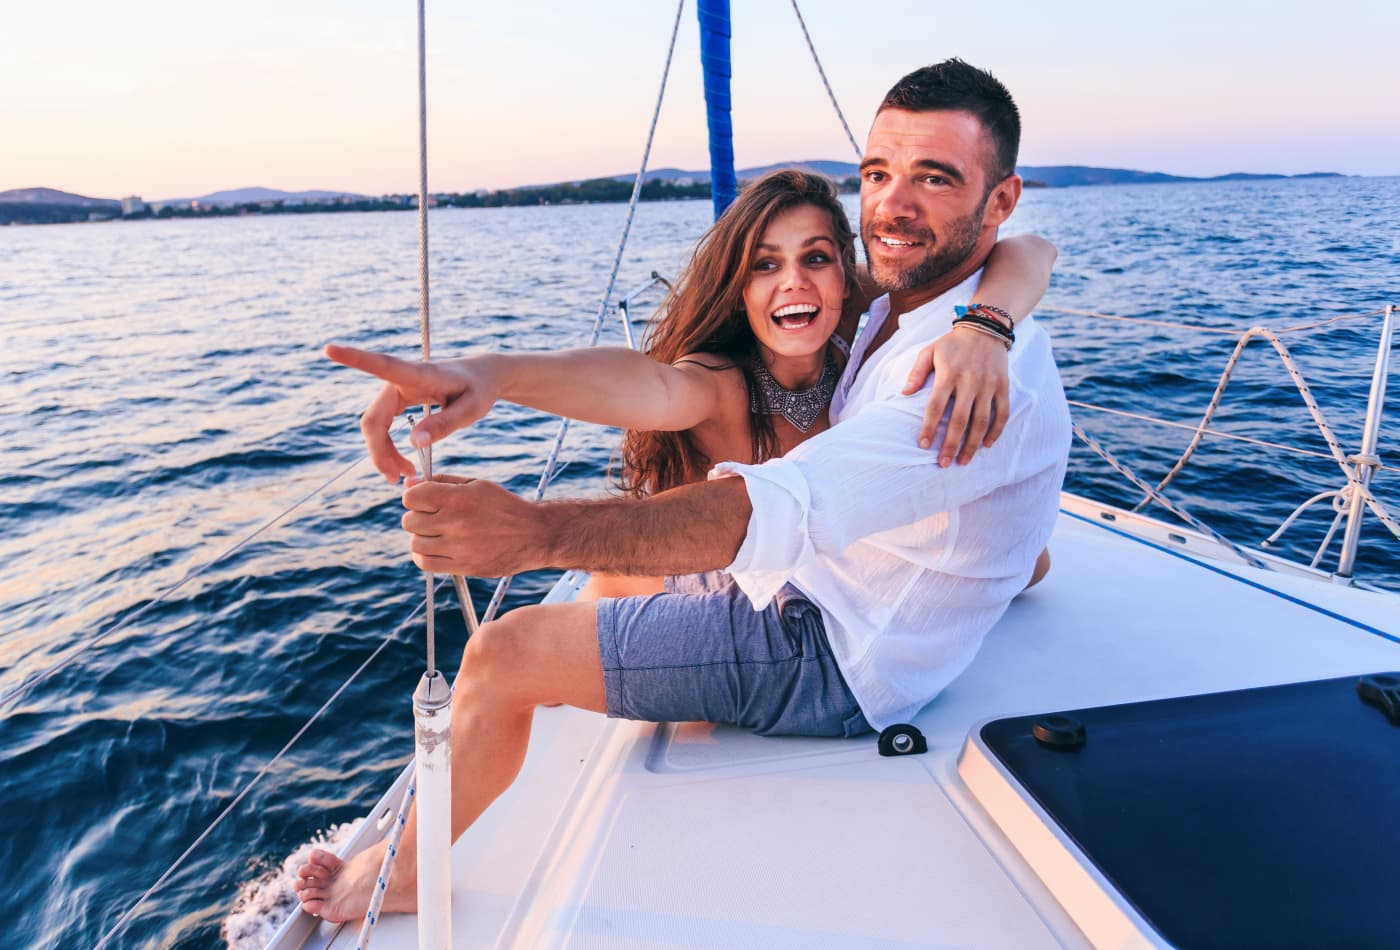 Self-made millionaire: 7 middle class beliefs that may be holding you back from getting super rich